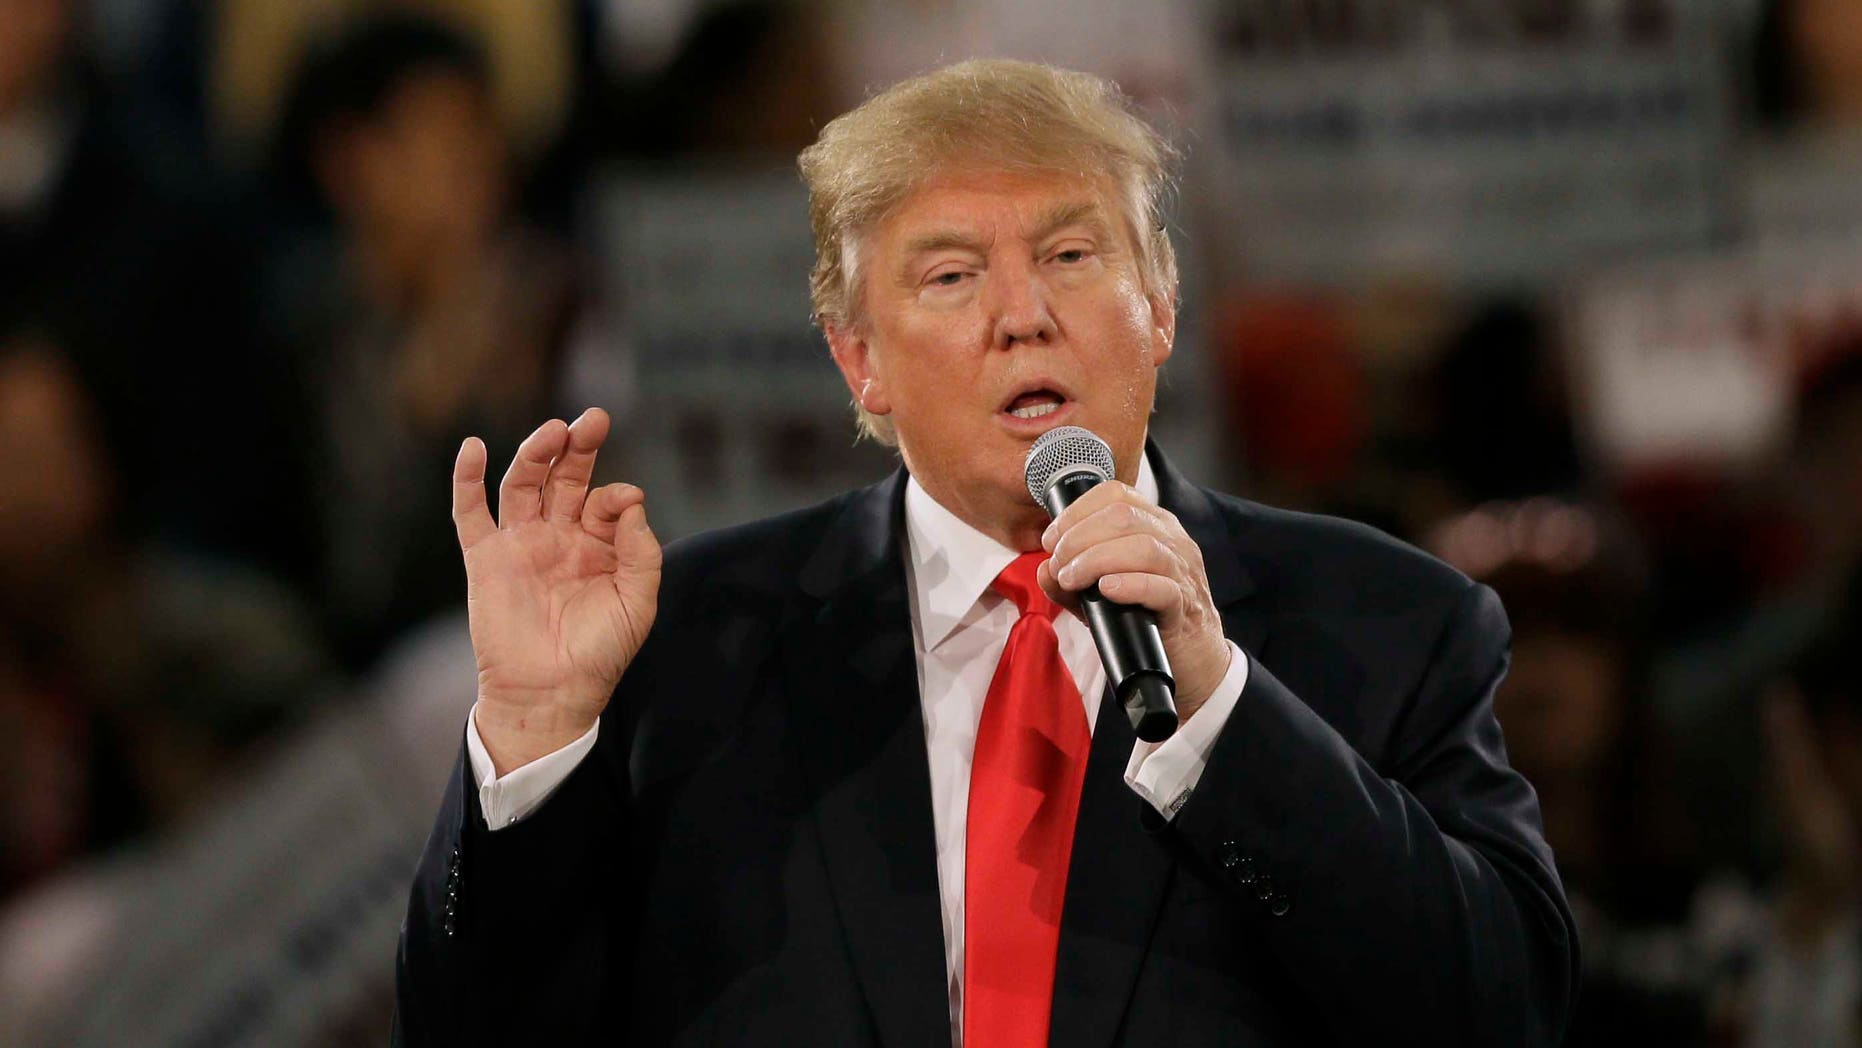 In this Dec. 11, 2015, photo, Republican presidential candidate Donald Trump speaks during a campaign rally in Des Moines, Iowa. Thereâs no legal or historical precedent for closing U.S. borders to the worldâs 1.6 billion Muslims, but neither is there any Supreme Court case that clearly prevents a president or Congress from doing so. Legal experts are divided over how the high court would react to Trumpâs call for a temporary halt to Muslims entering the United States. (AP Photo/Charlie Neibergall)